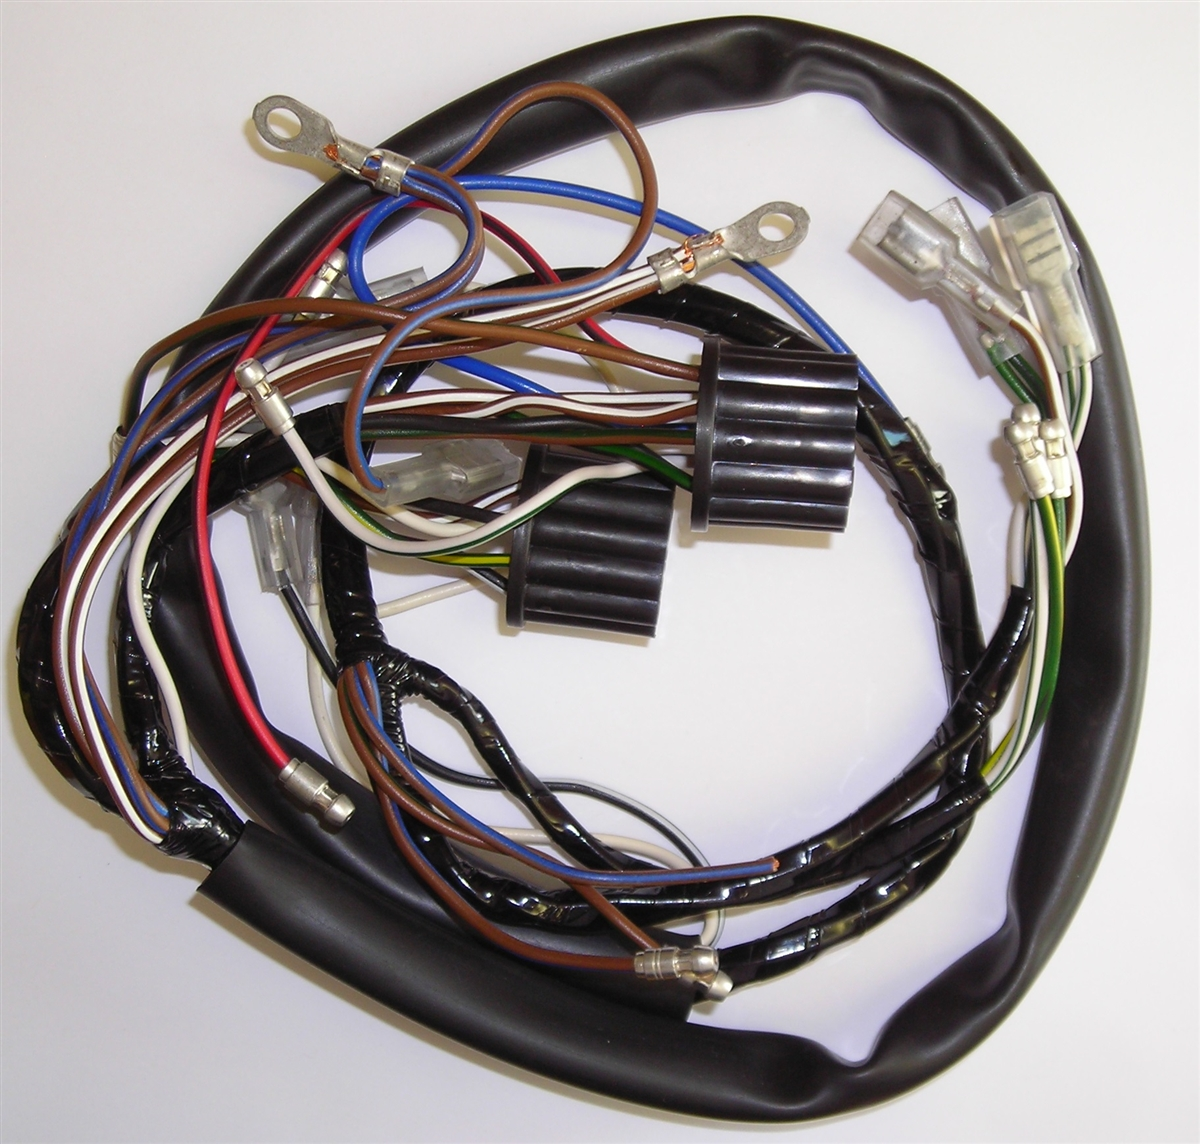 triumph motorcycle wiring harness rh britishwiring com motorcycle wiring harness kit motorcycle wiring harness connectors